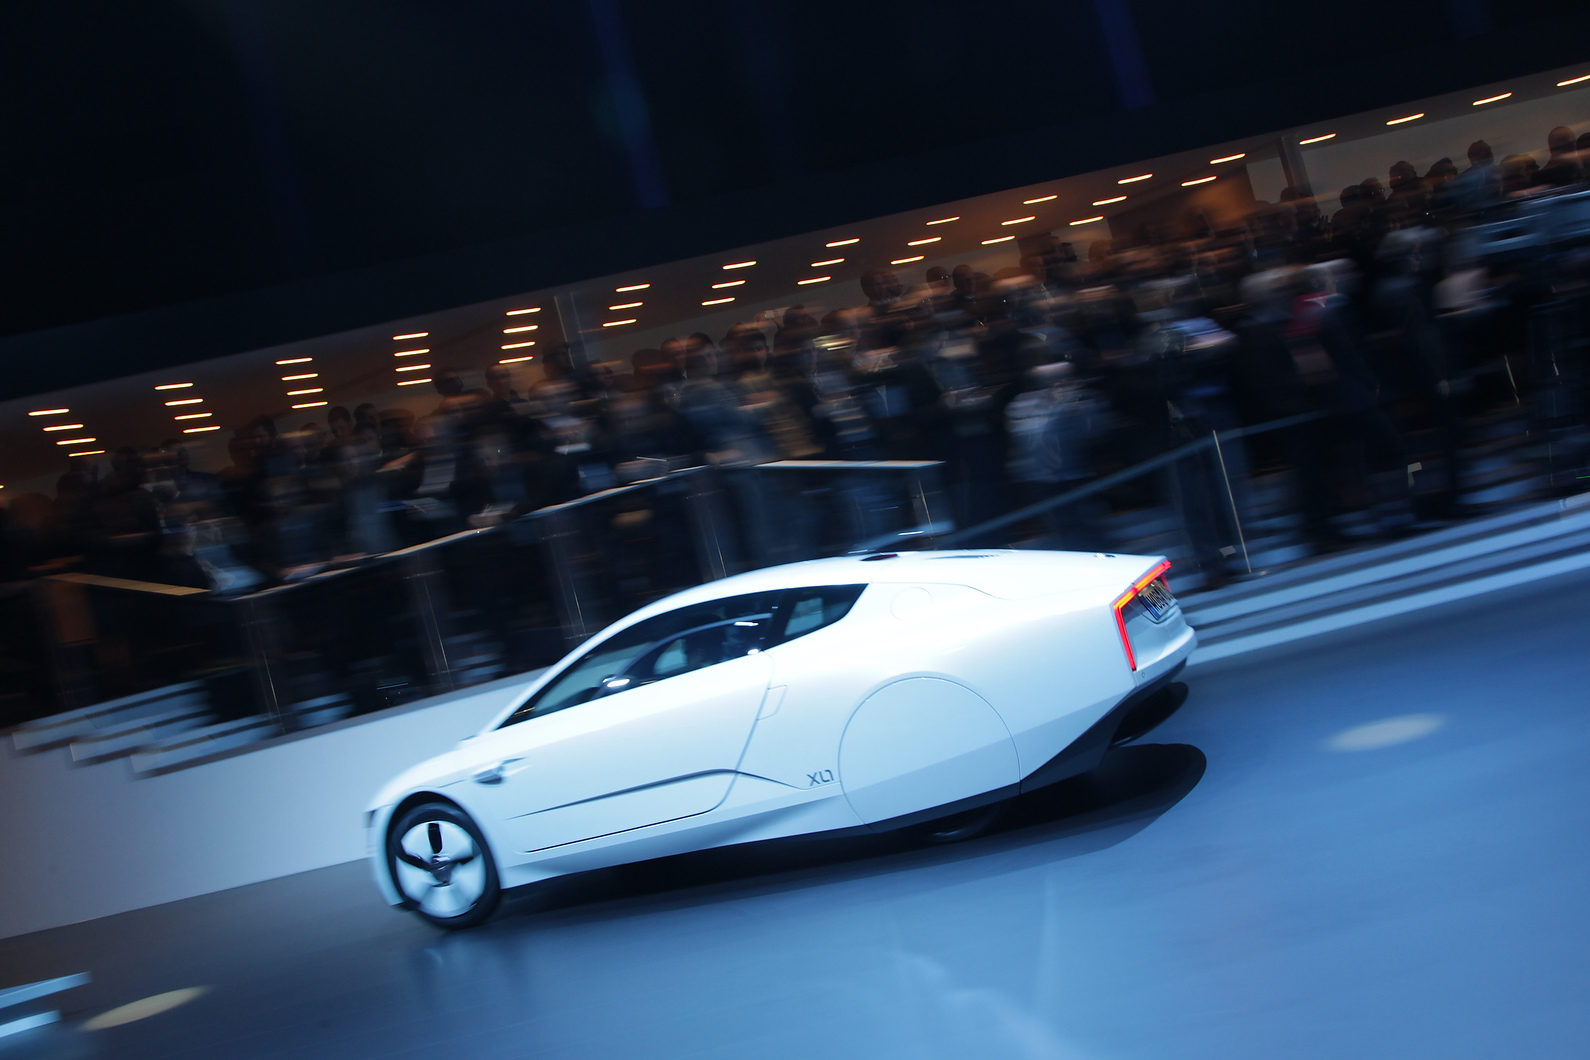 VW XL1 will go on sale later this year; initially 50 will be made